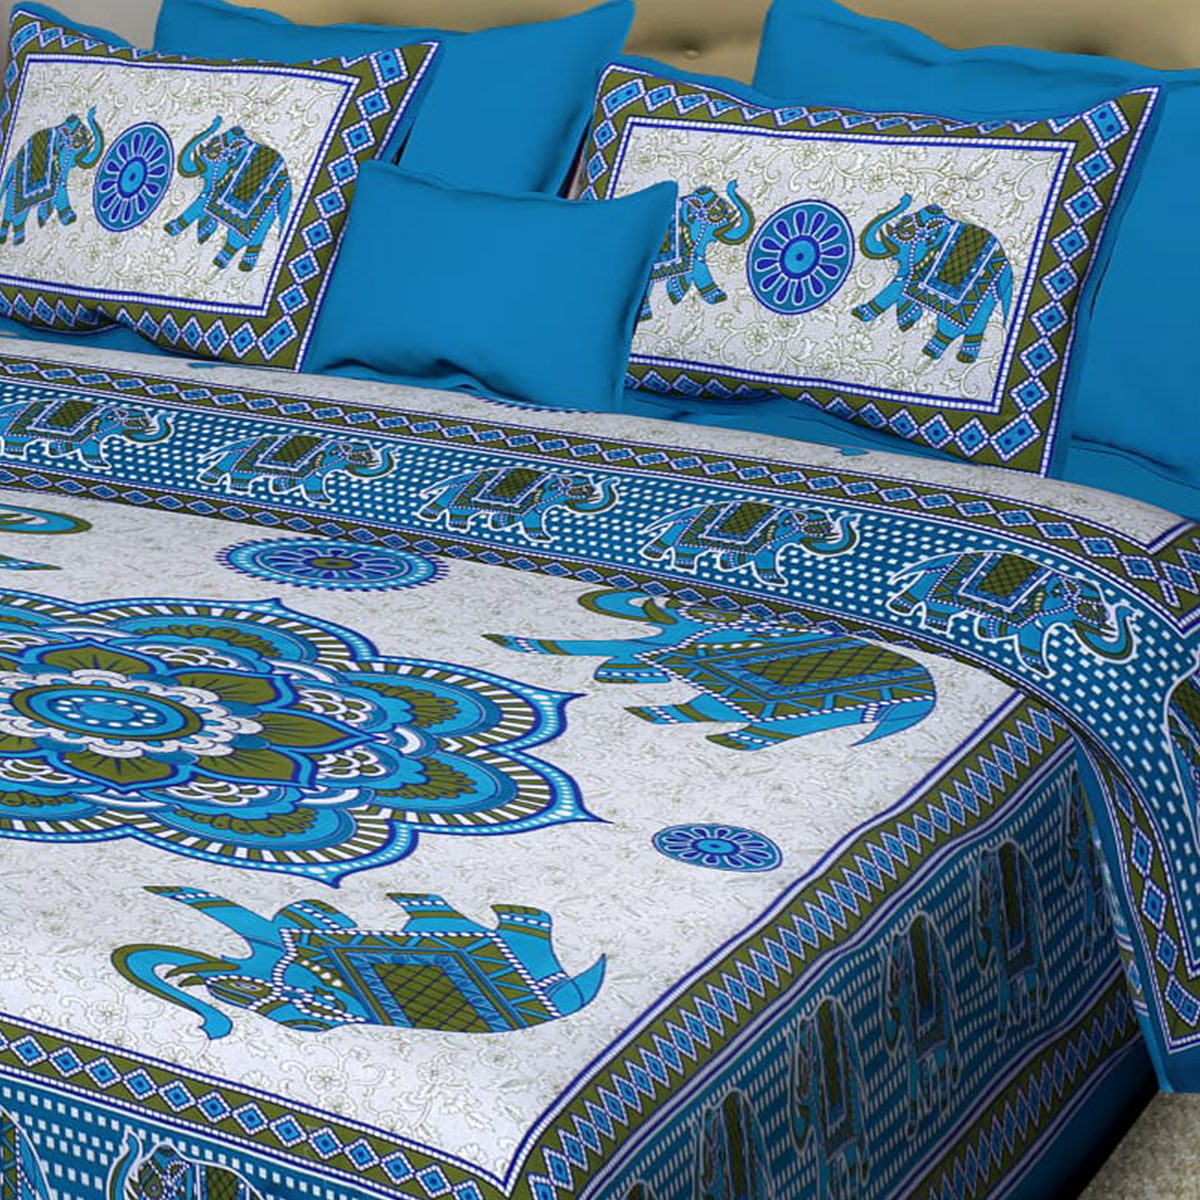 Diva Collection - Sky Blue Colored Jaipuri Print Cotton Double Bedsheet with 2 Pillow Cover